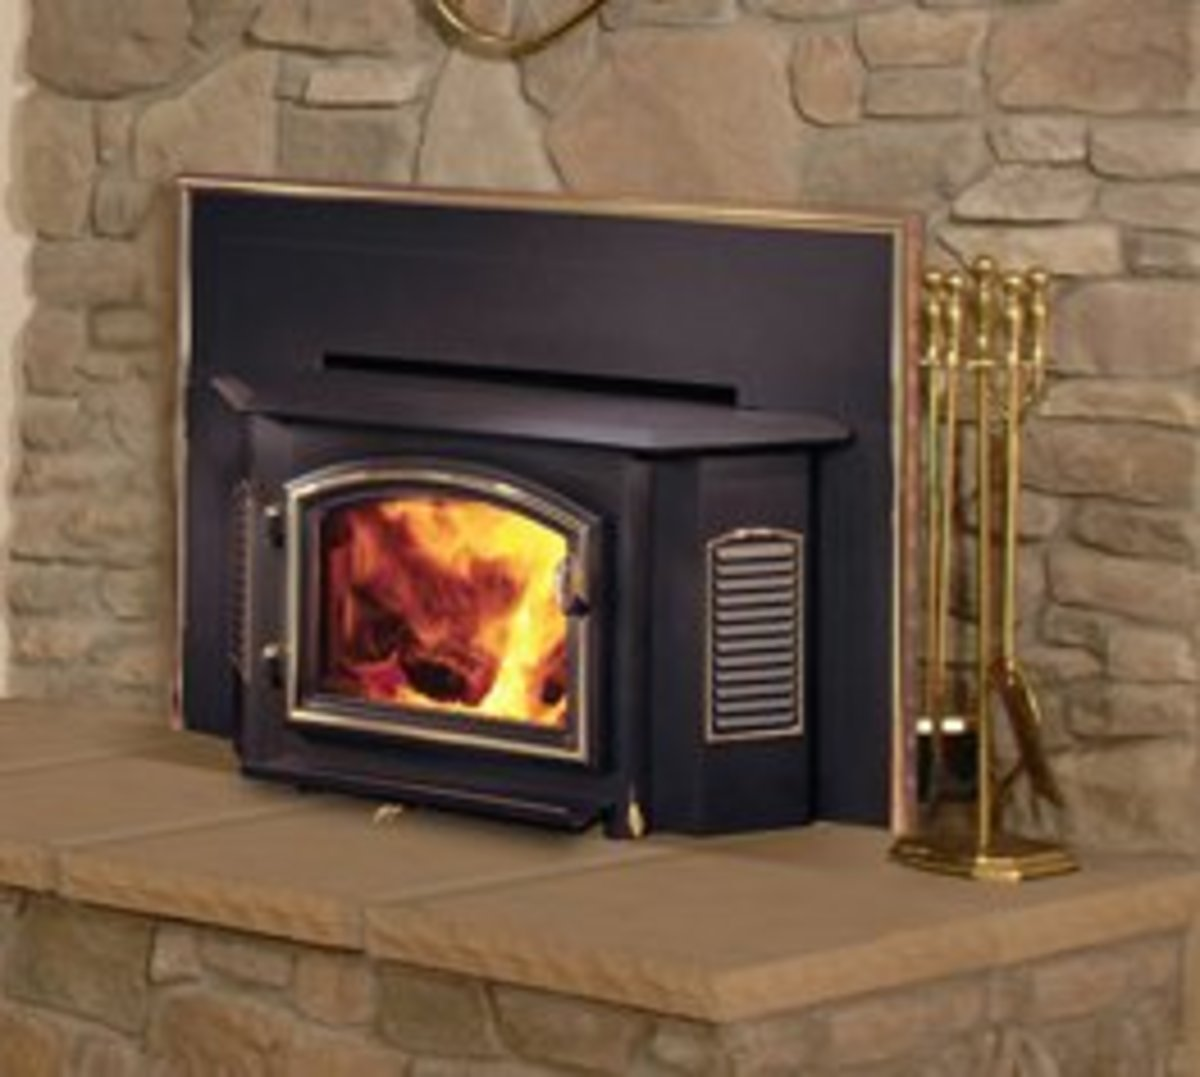 A Regency Wood Burning Fireplace Insert